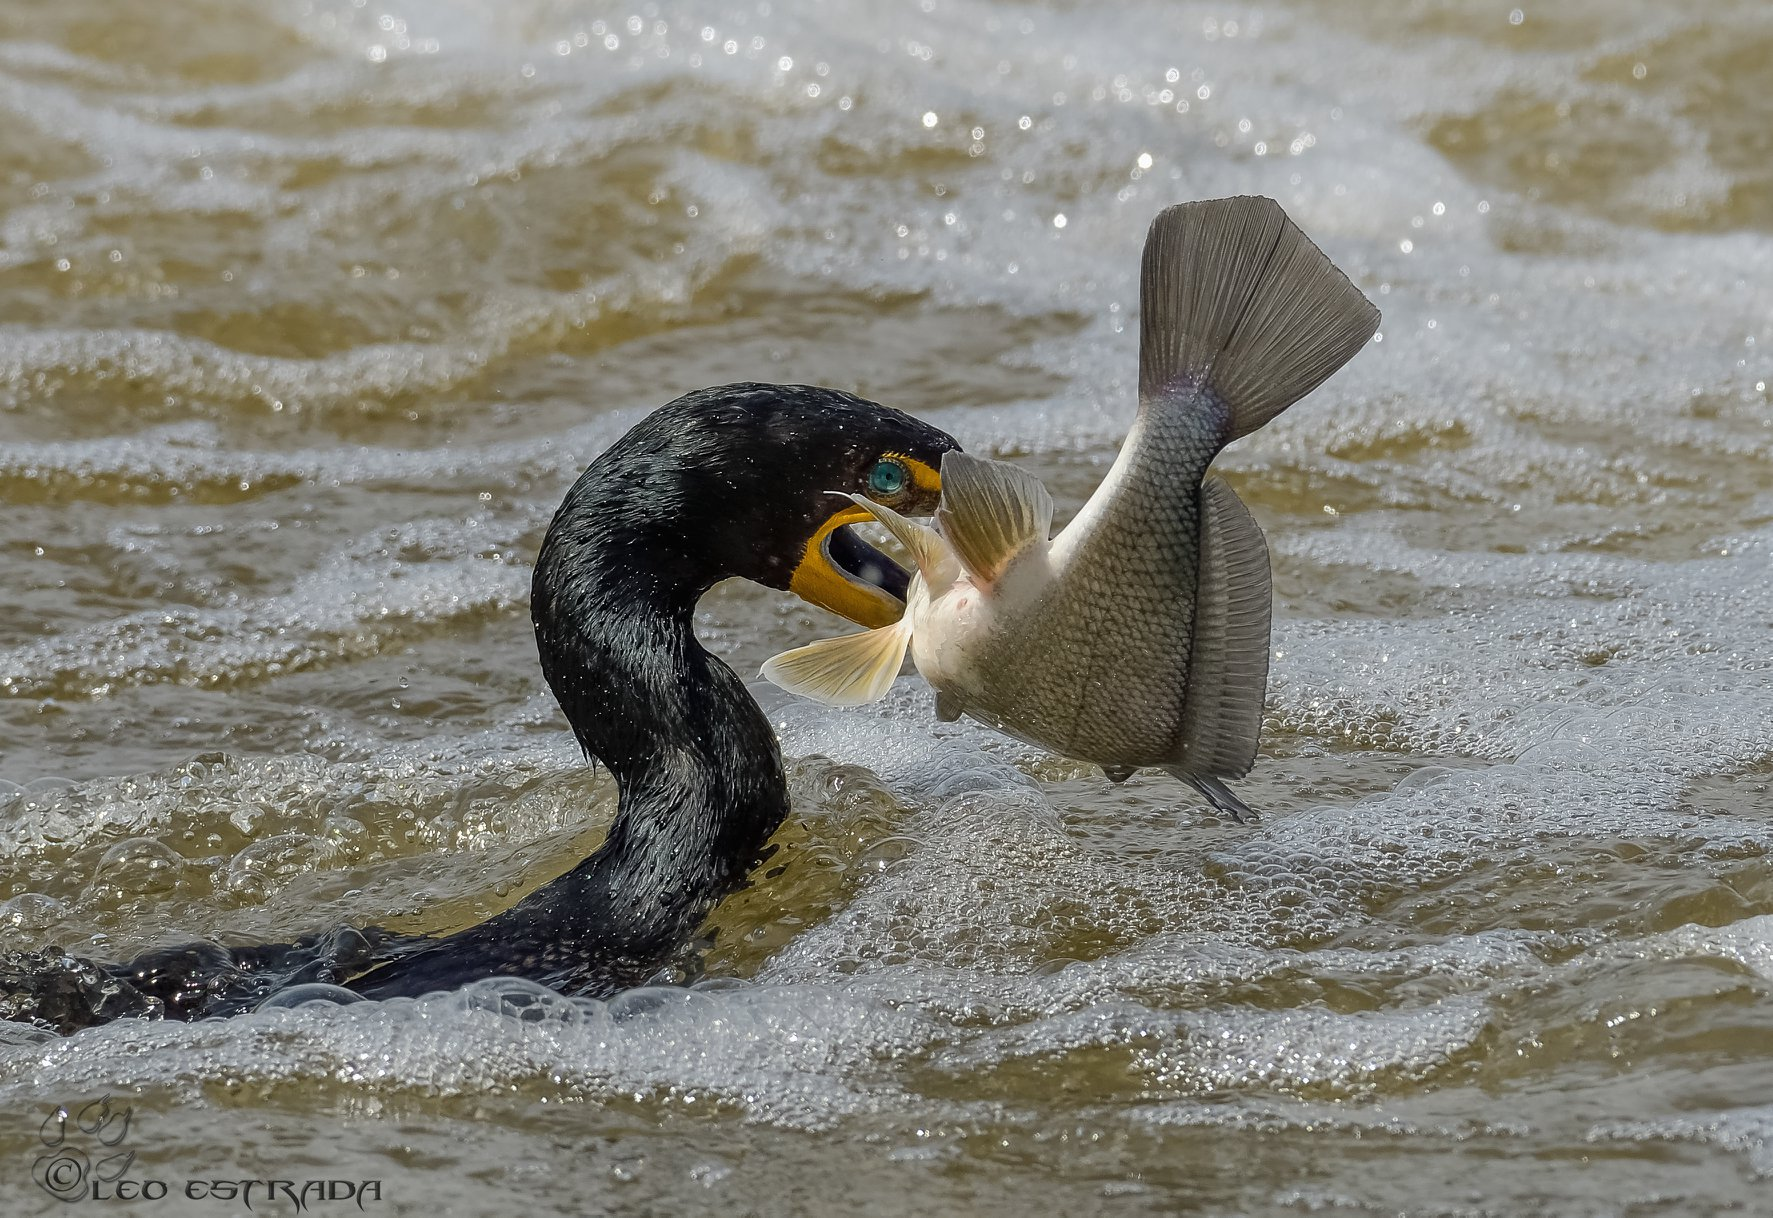 Second Place Winner: Double-crested Cormorant with catfish. Photo by Leo Estrada.